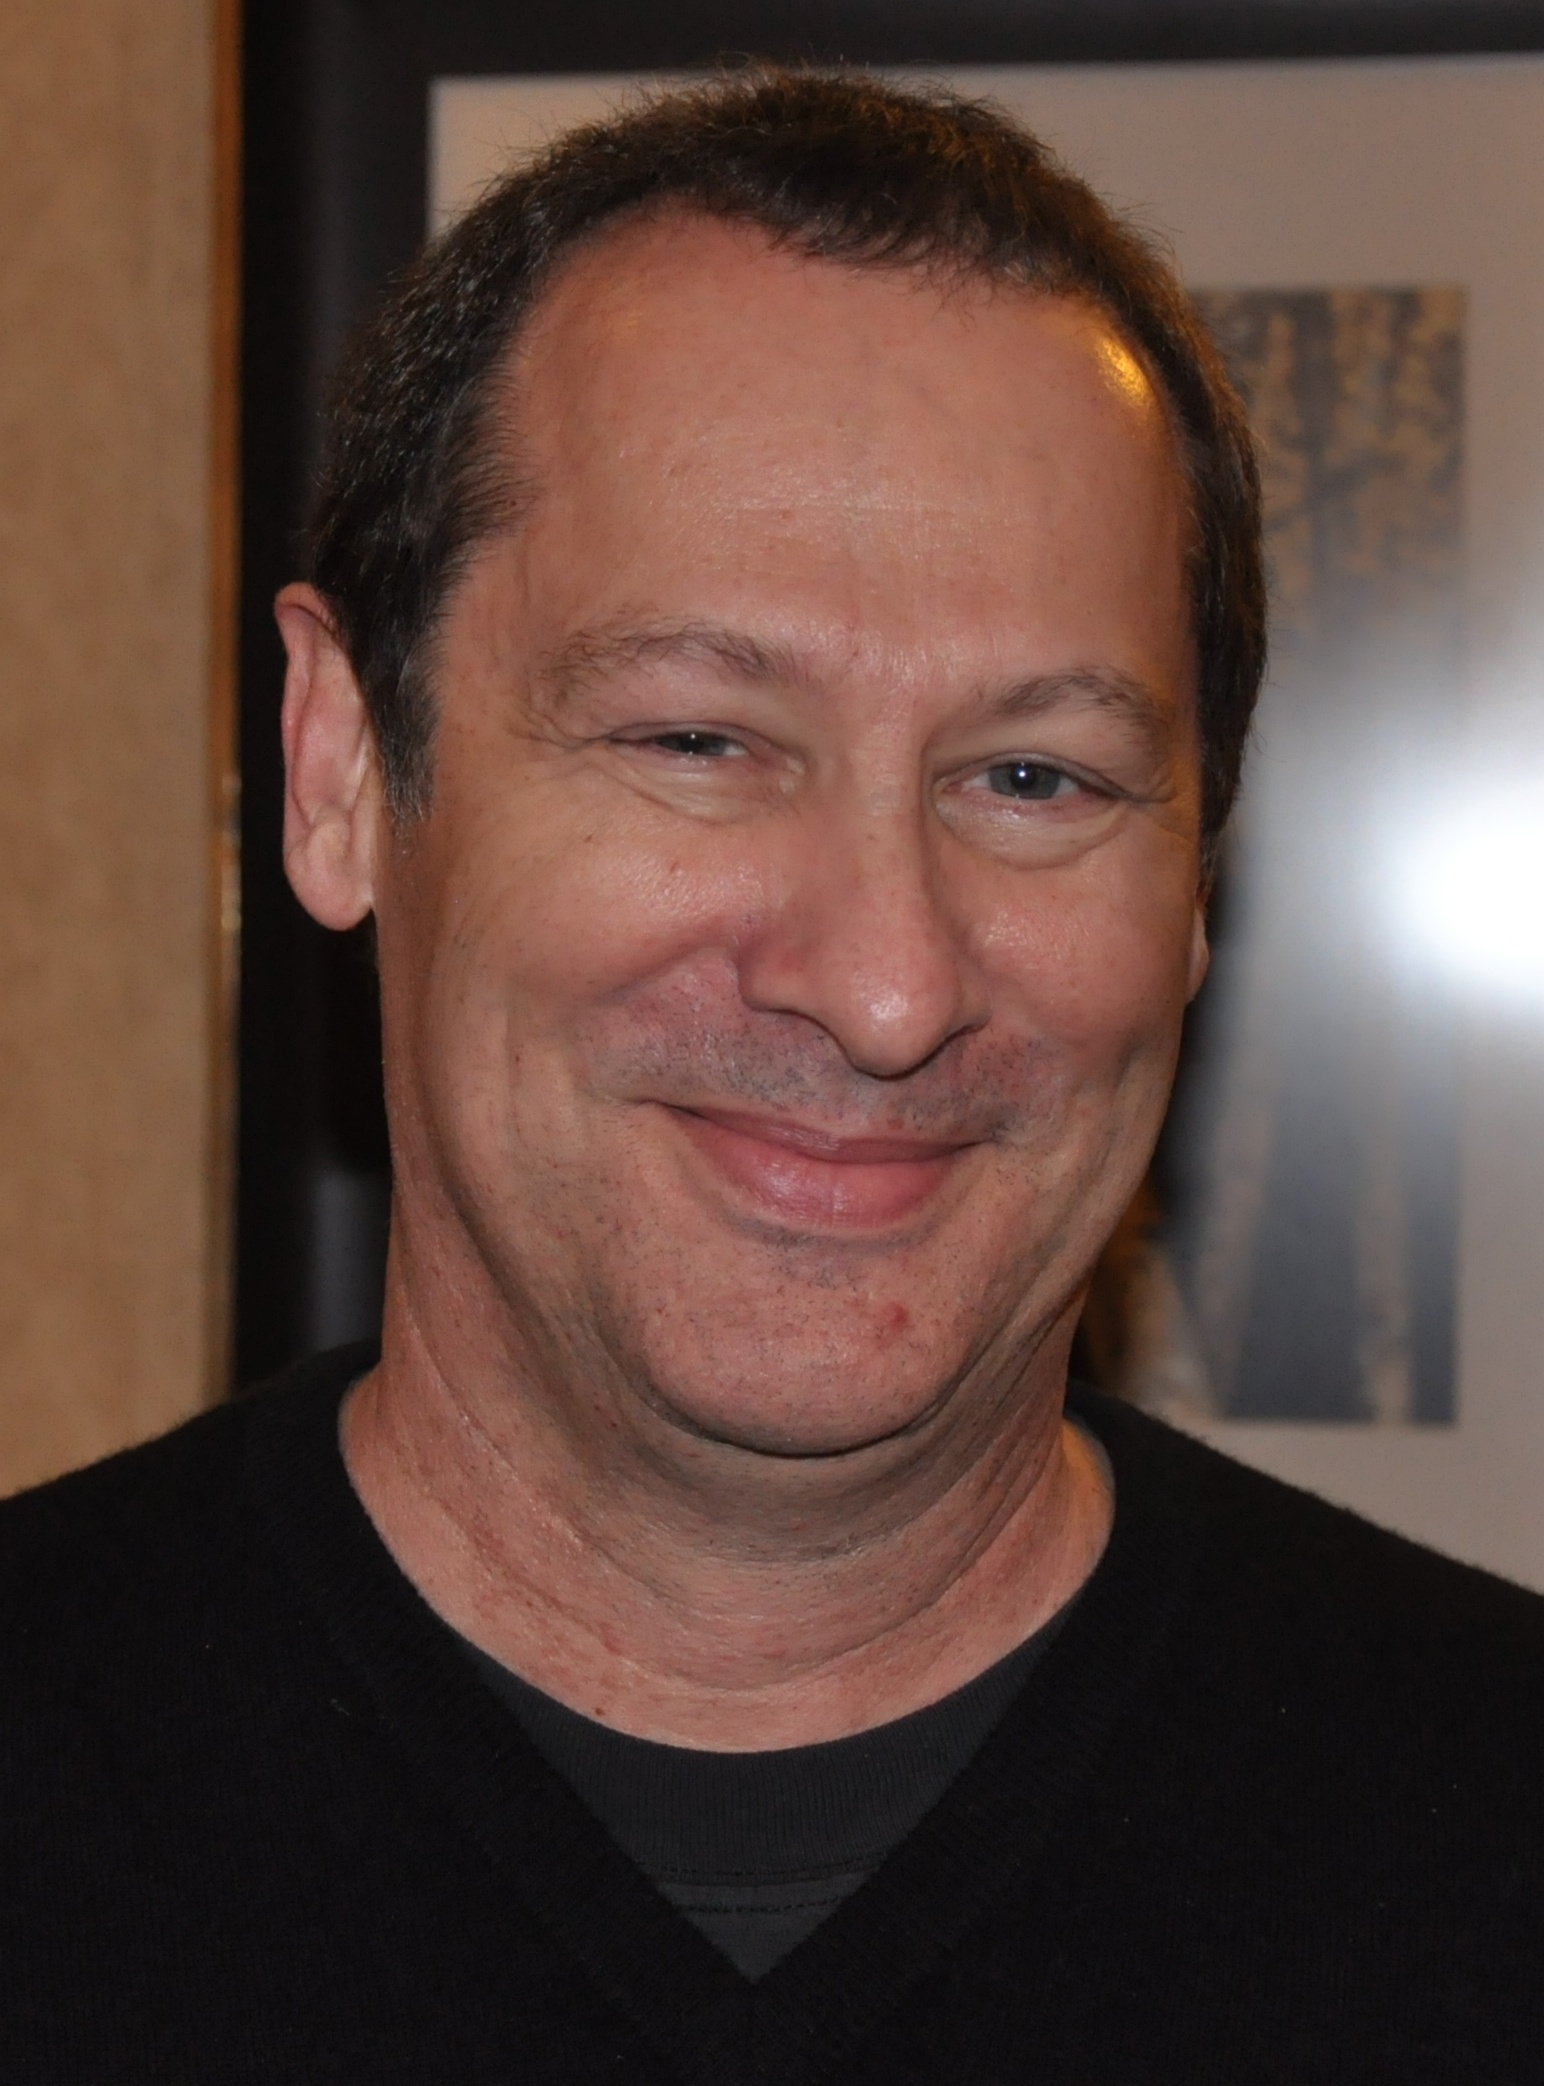 The 64-year old son of father (?) and mother(?) Cliff Martinez in 2018 photo. Cliff Martinez earned a  million dollar salary - leaving the net worth at 2 million in 2018